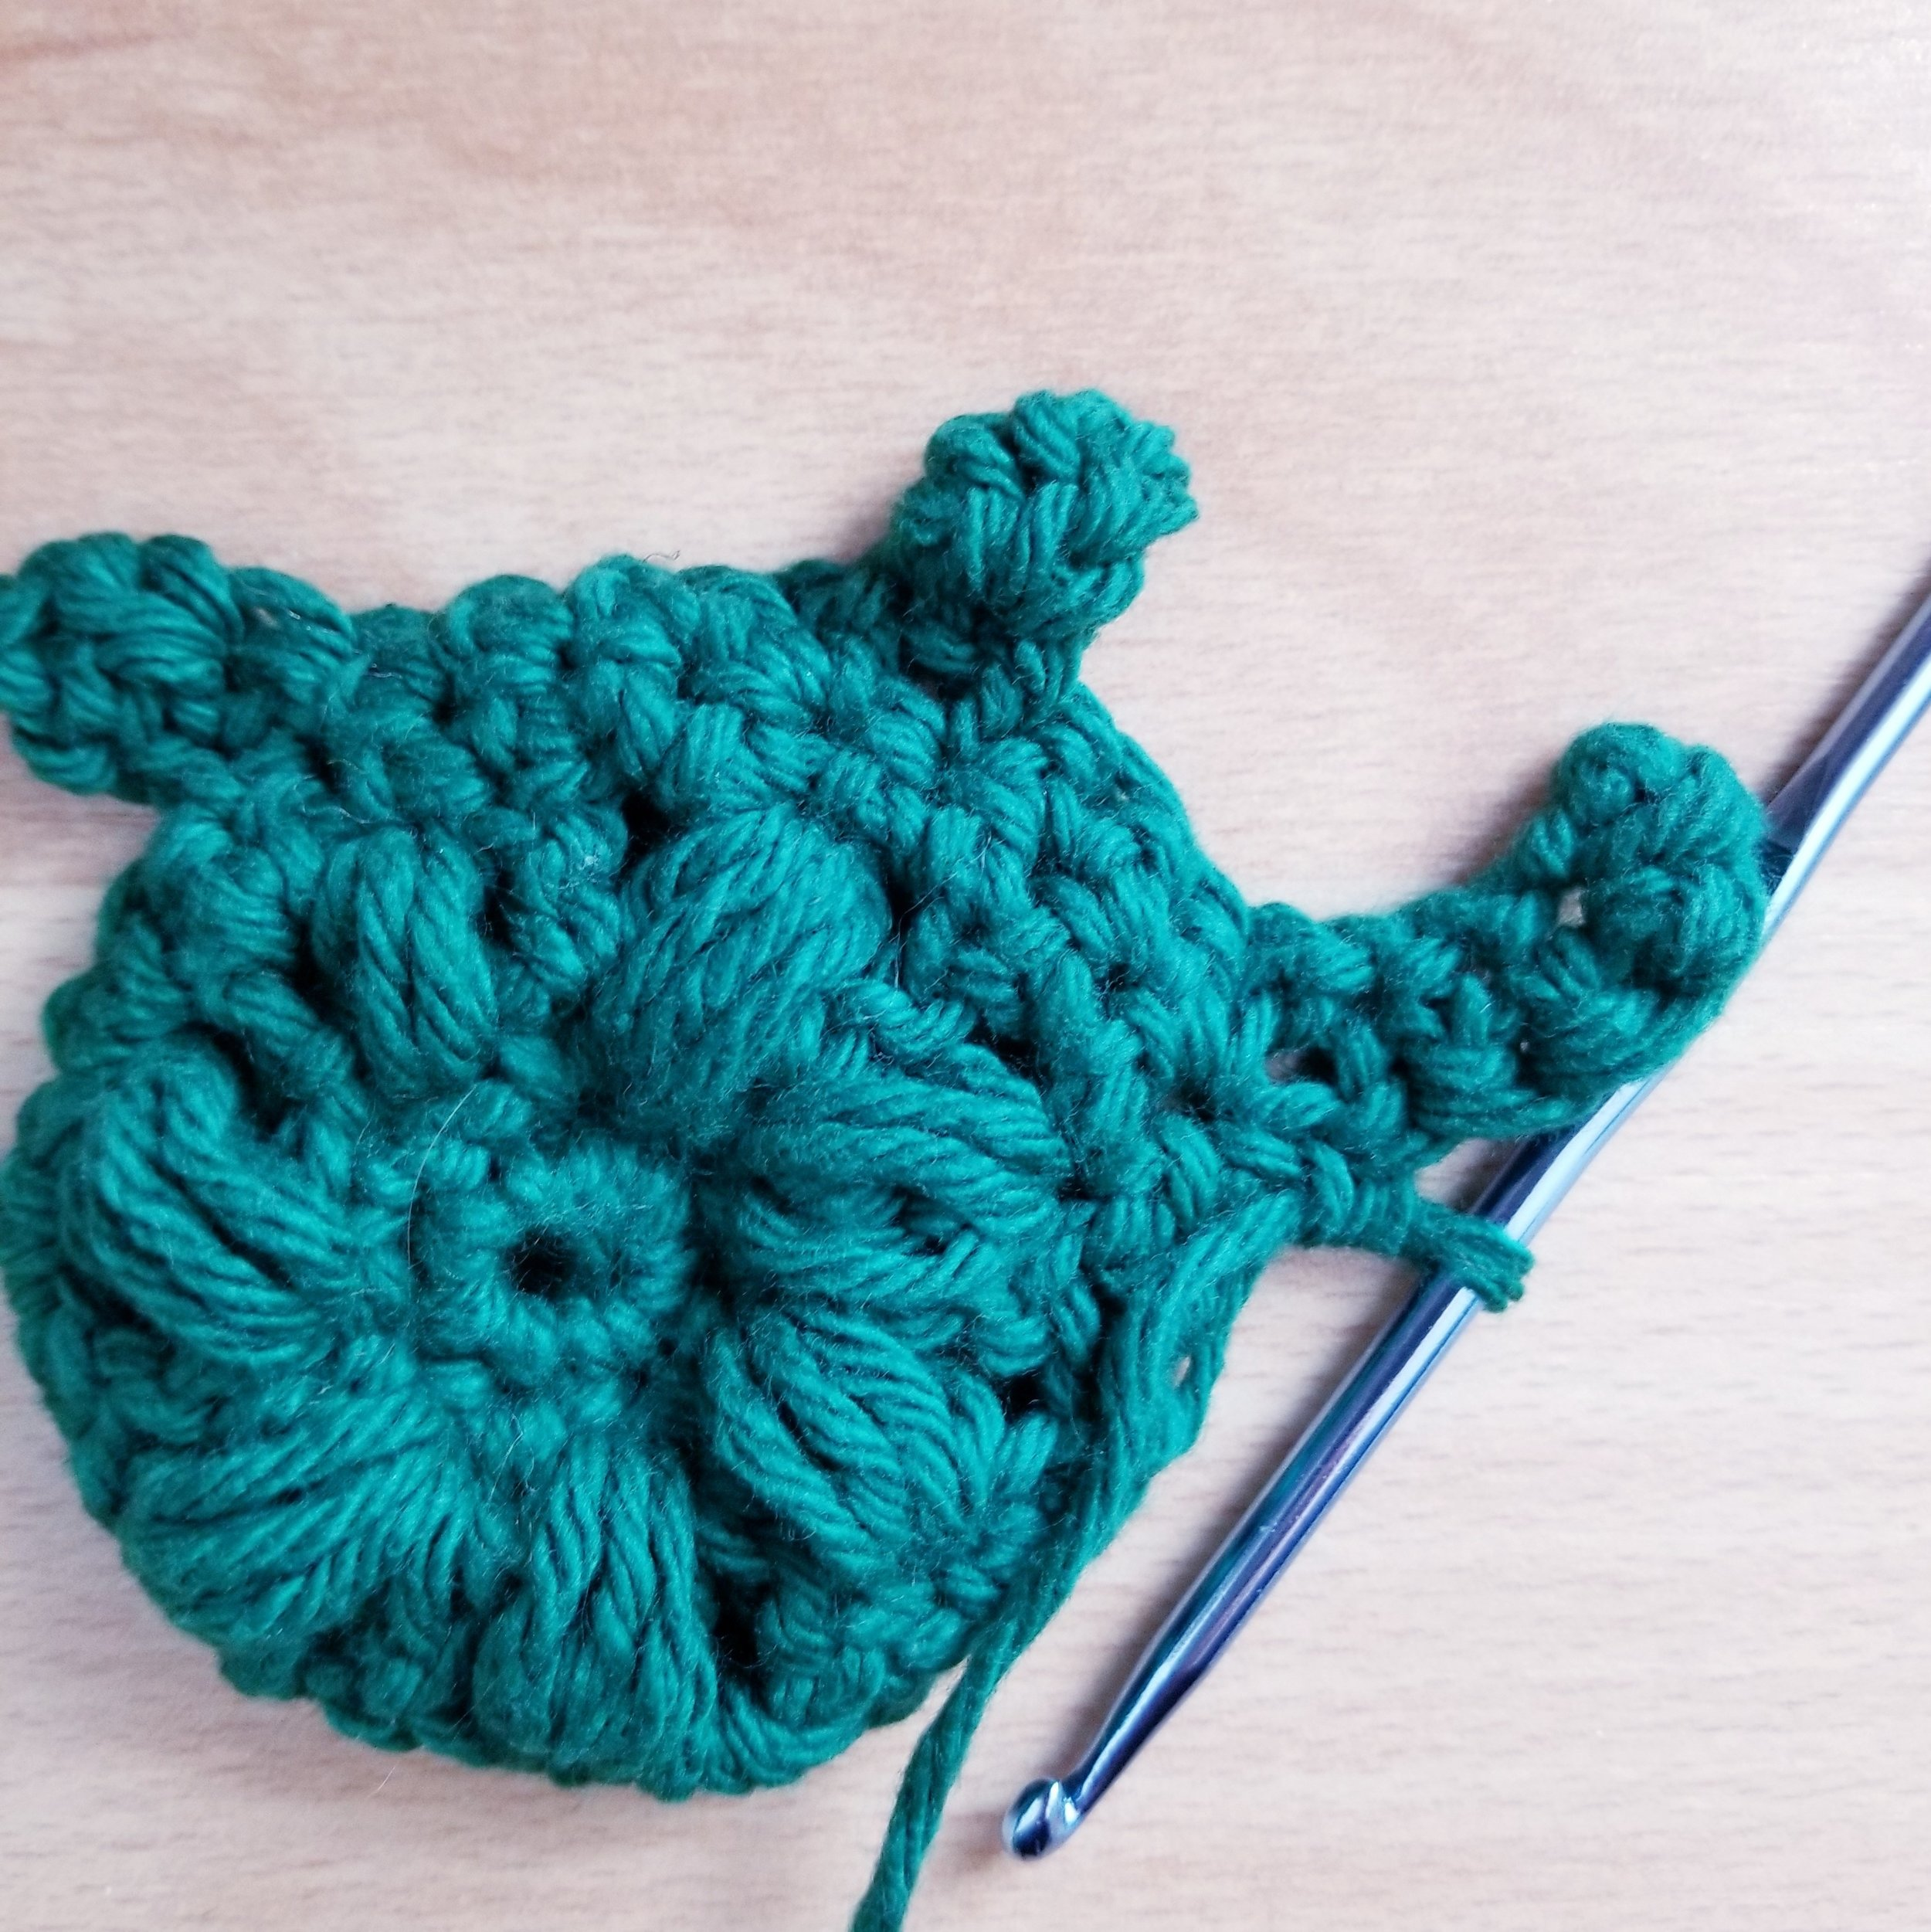 Crochet Turtle Applique - making the tail